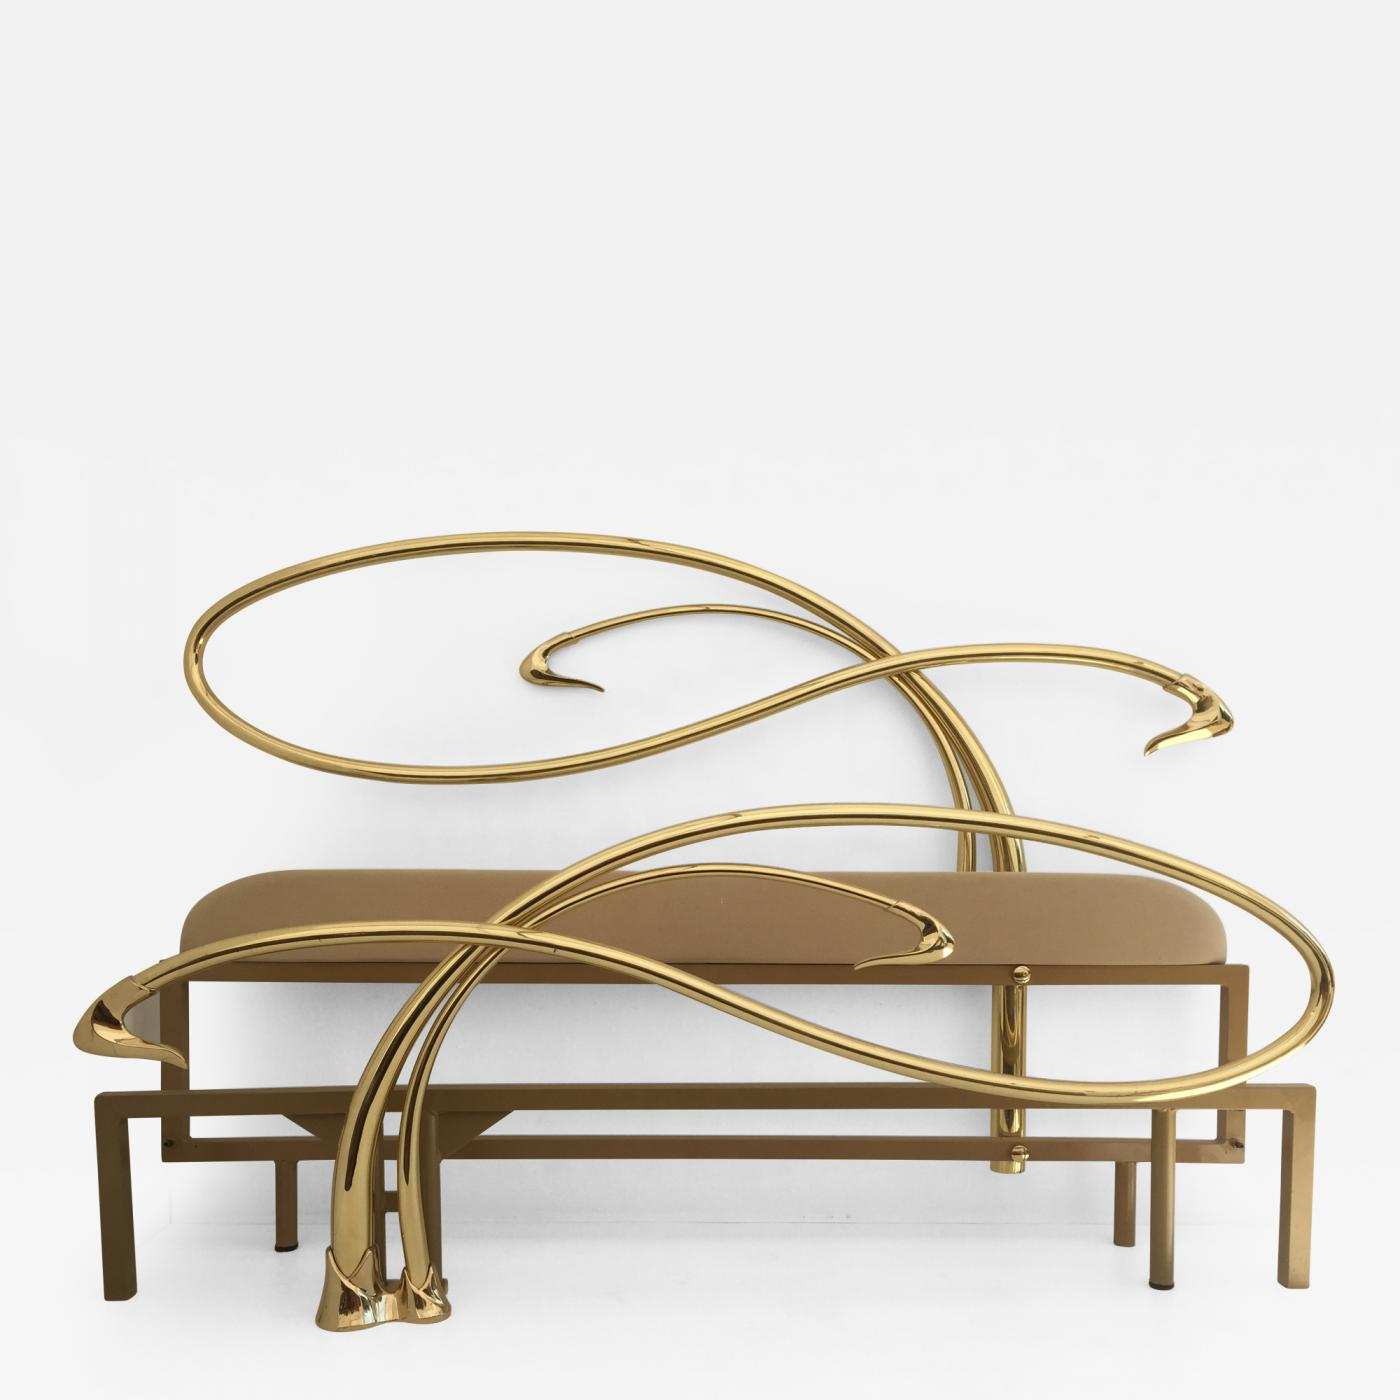 Edgar Brandt Art Nouveau Style Brass King Size Bed. Tap To Expand